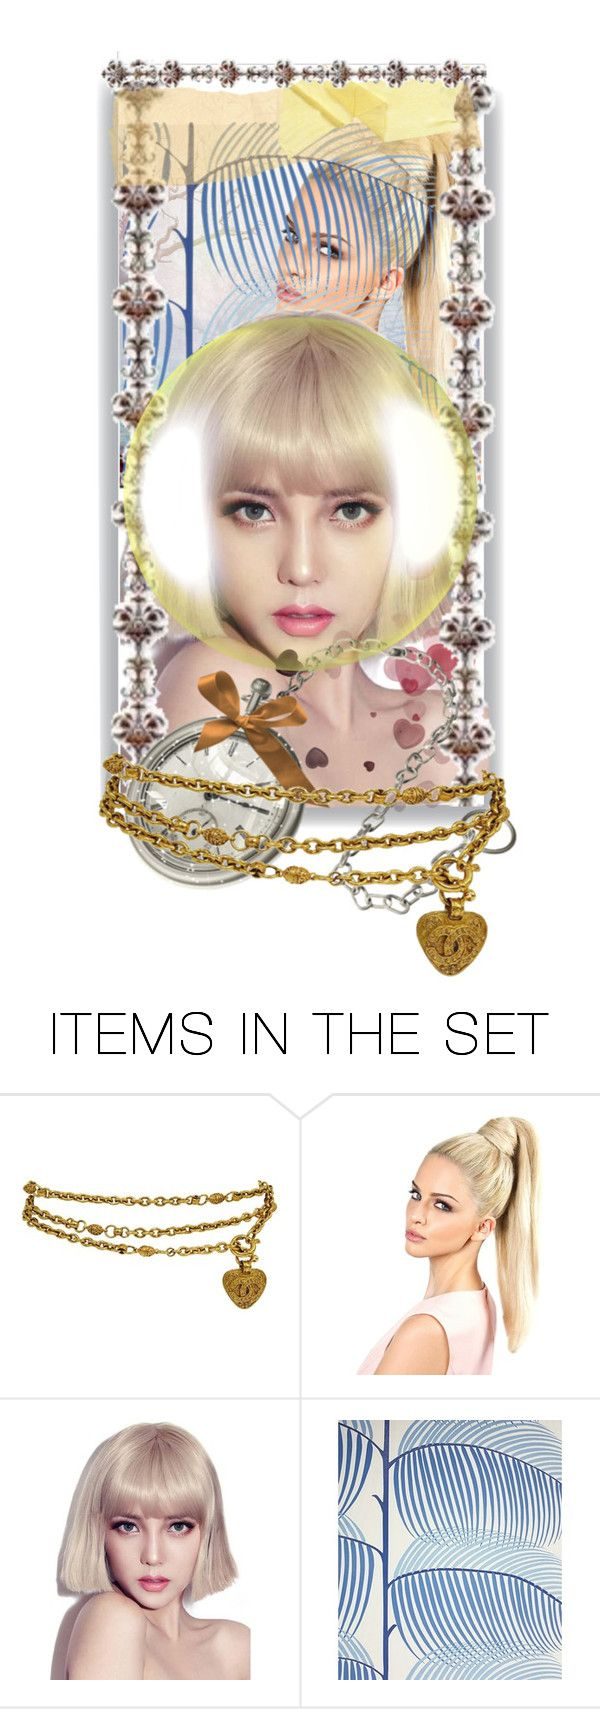 """Geen titel #24195"" by lizmuller ❤ liked on Polyvore featuring art"